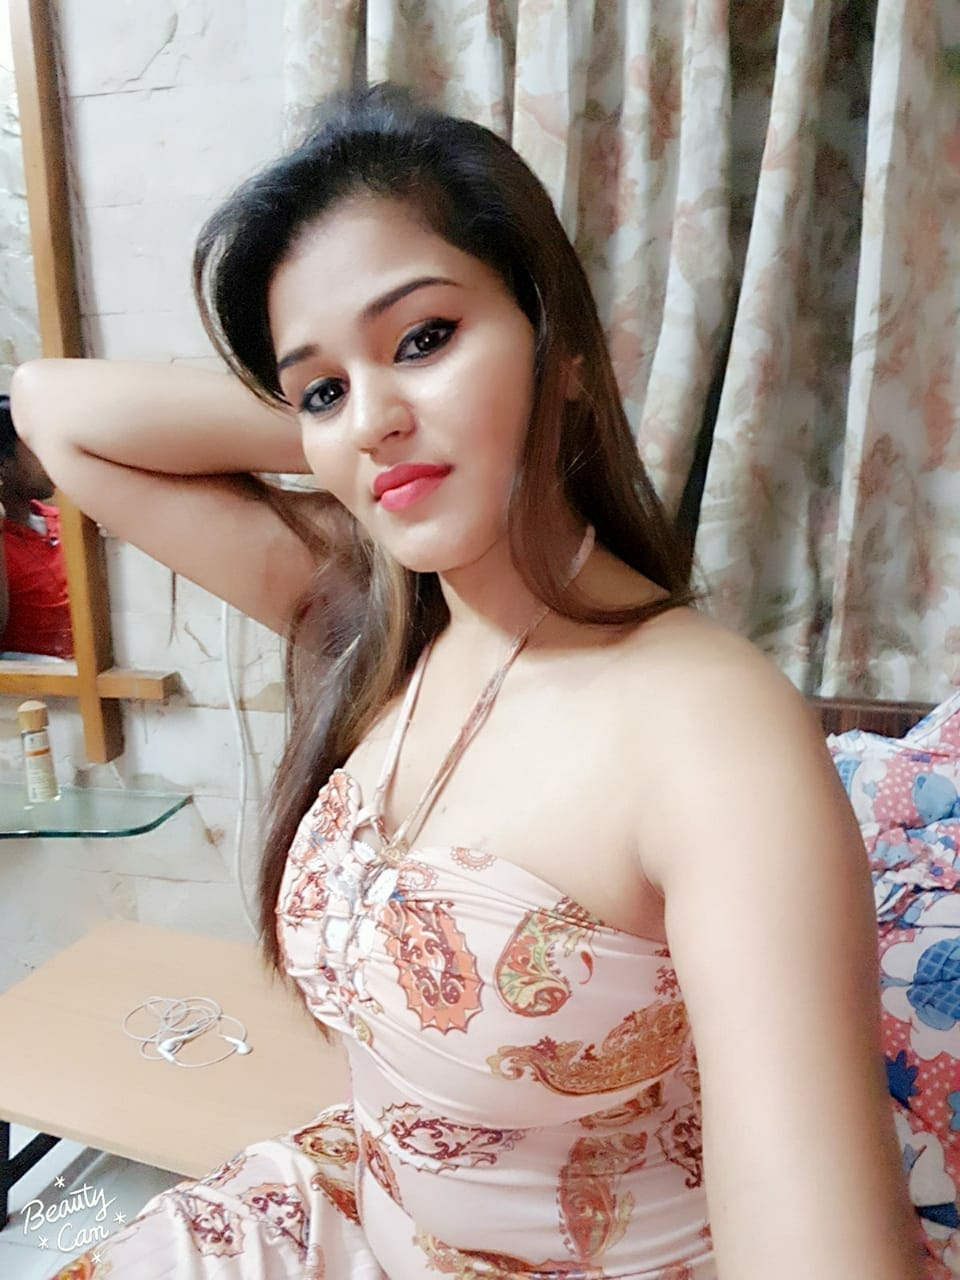 Russian Escorts In  Chandivali